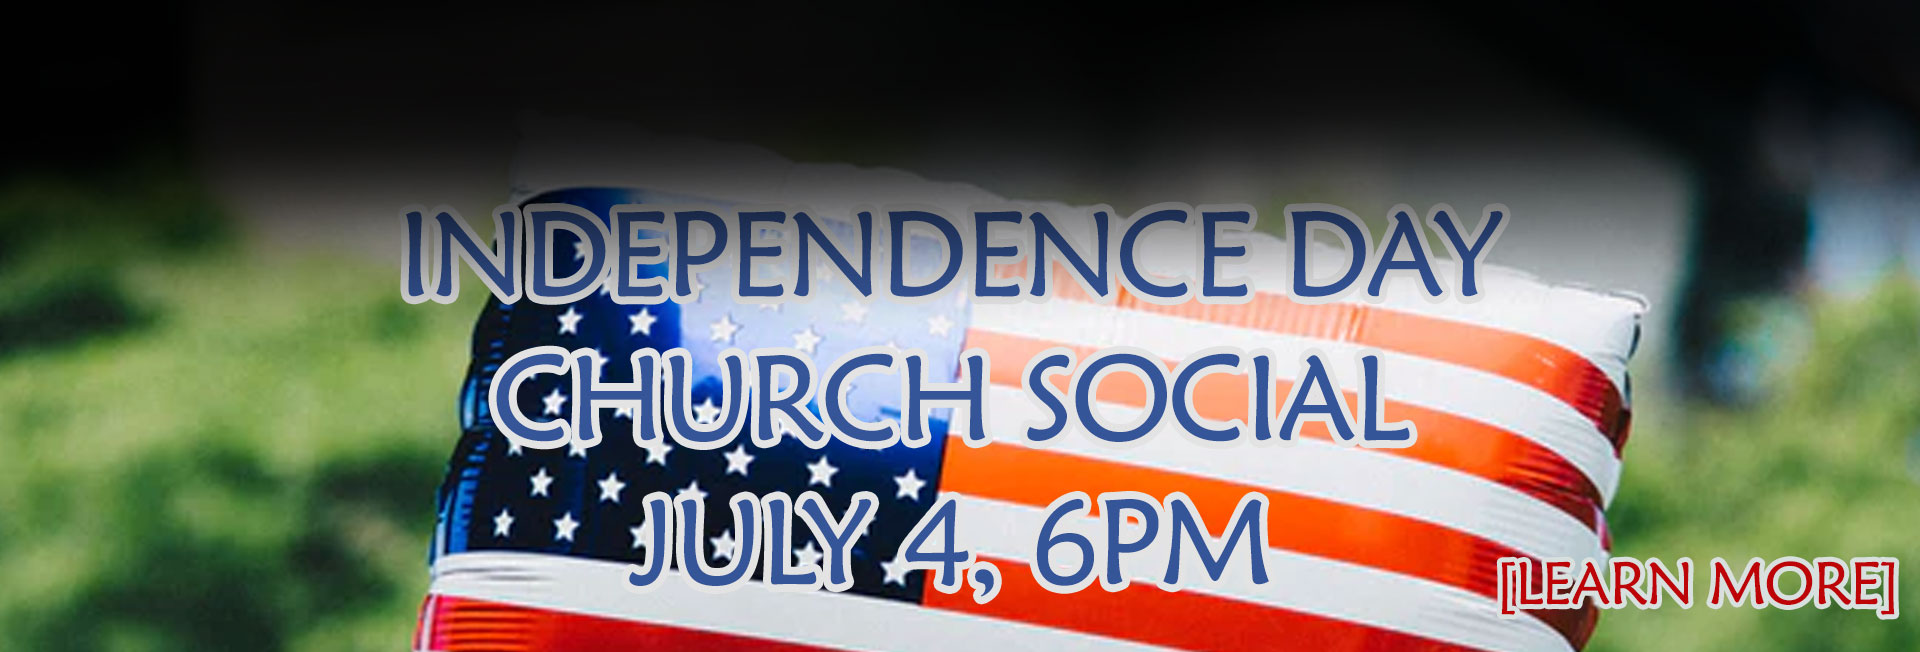 Independence Day Church Social July 4, 6pm